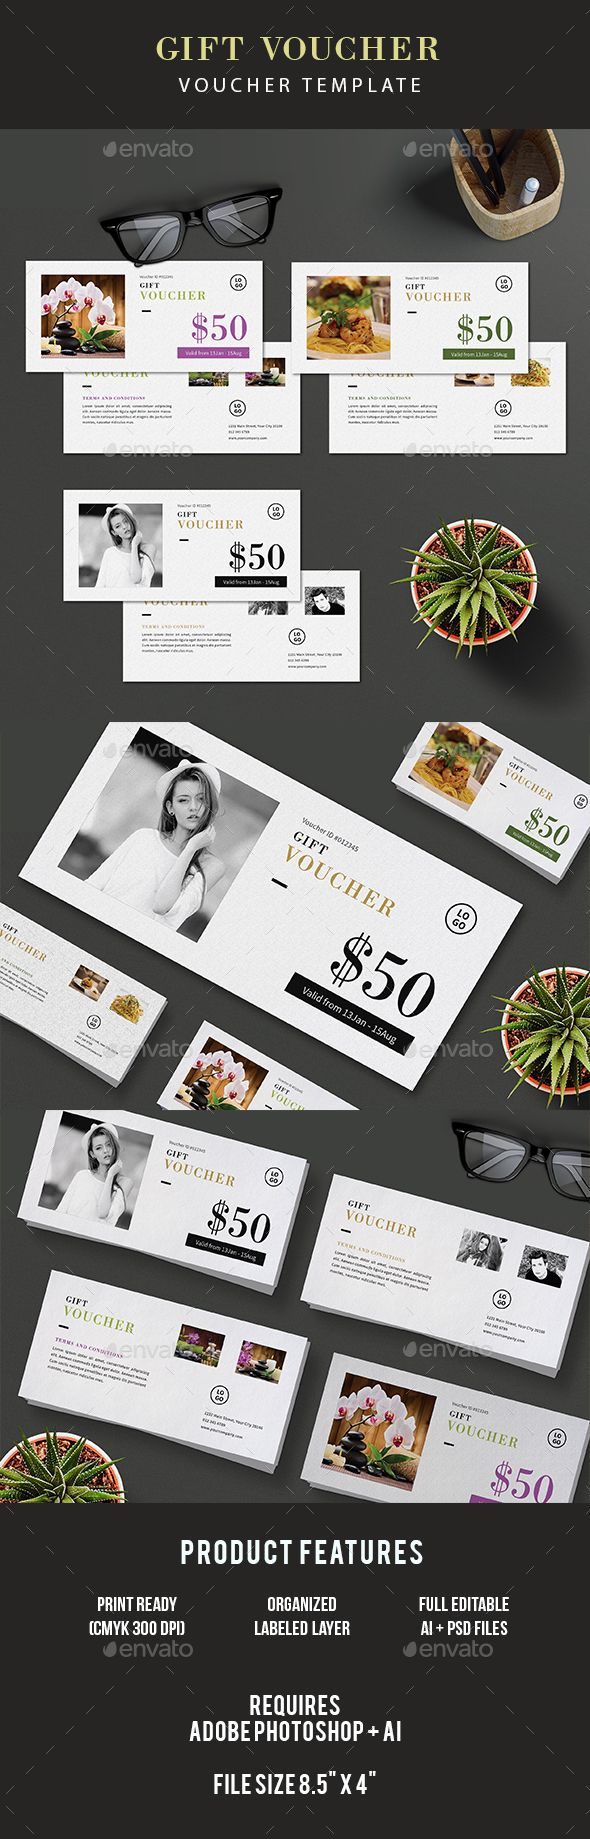 Pin By Best Graphic Design On Gift Voucher Templates Pinterest